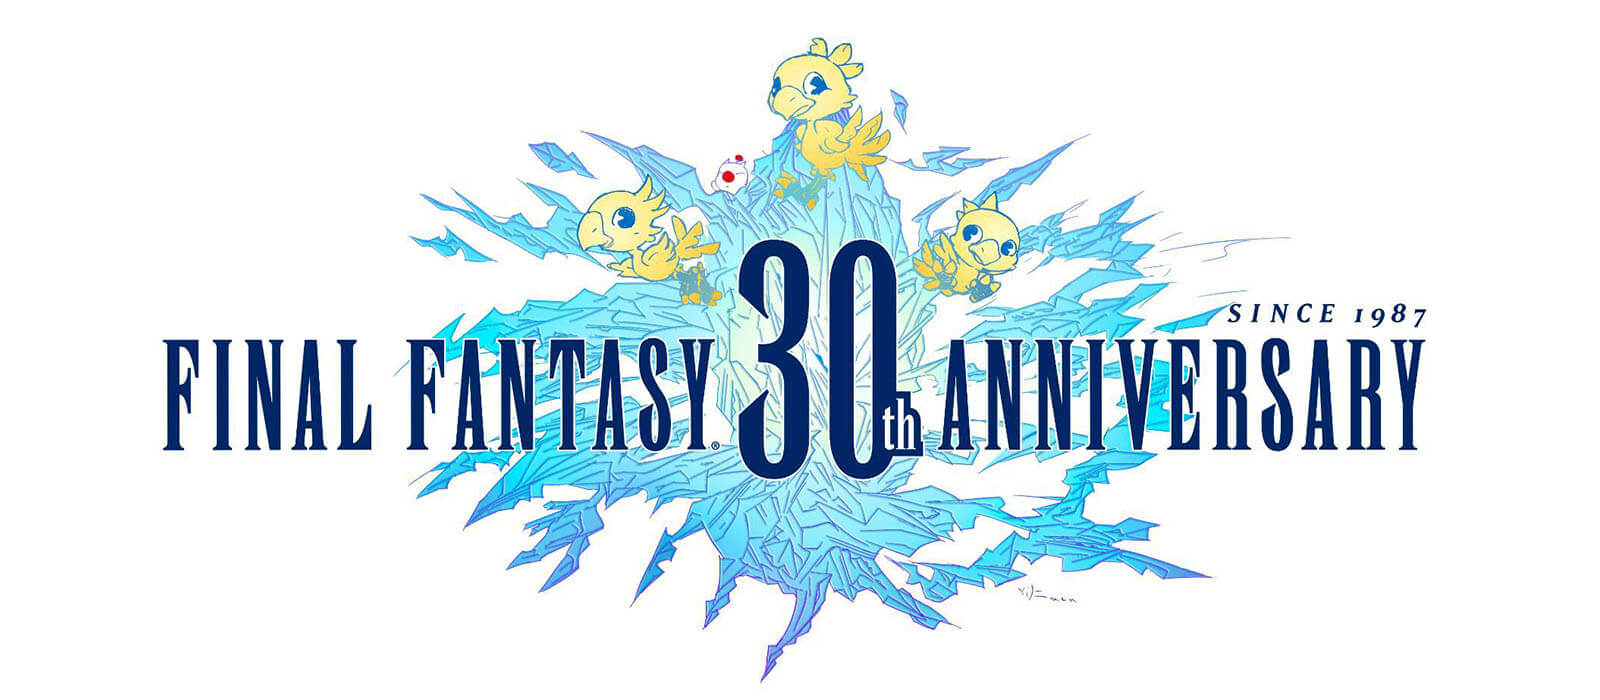 Final Fantasy 30th Anniversary Concert - Here are the opportunities to see some of your favorite bands performing live in 2017 Upcoming JPOP/JRock Concerts in America (non-US) & Oceania